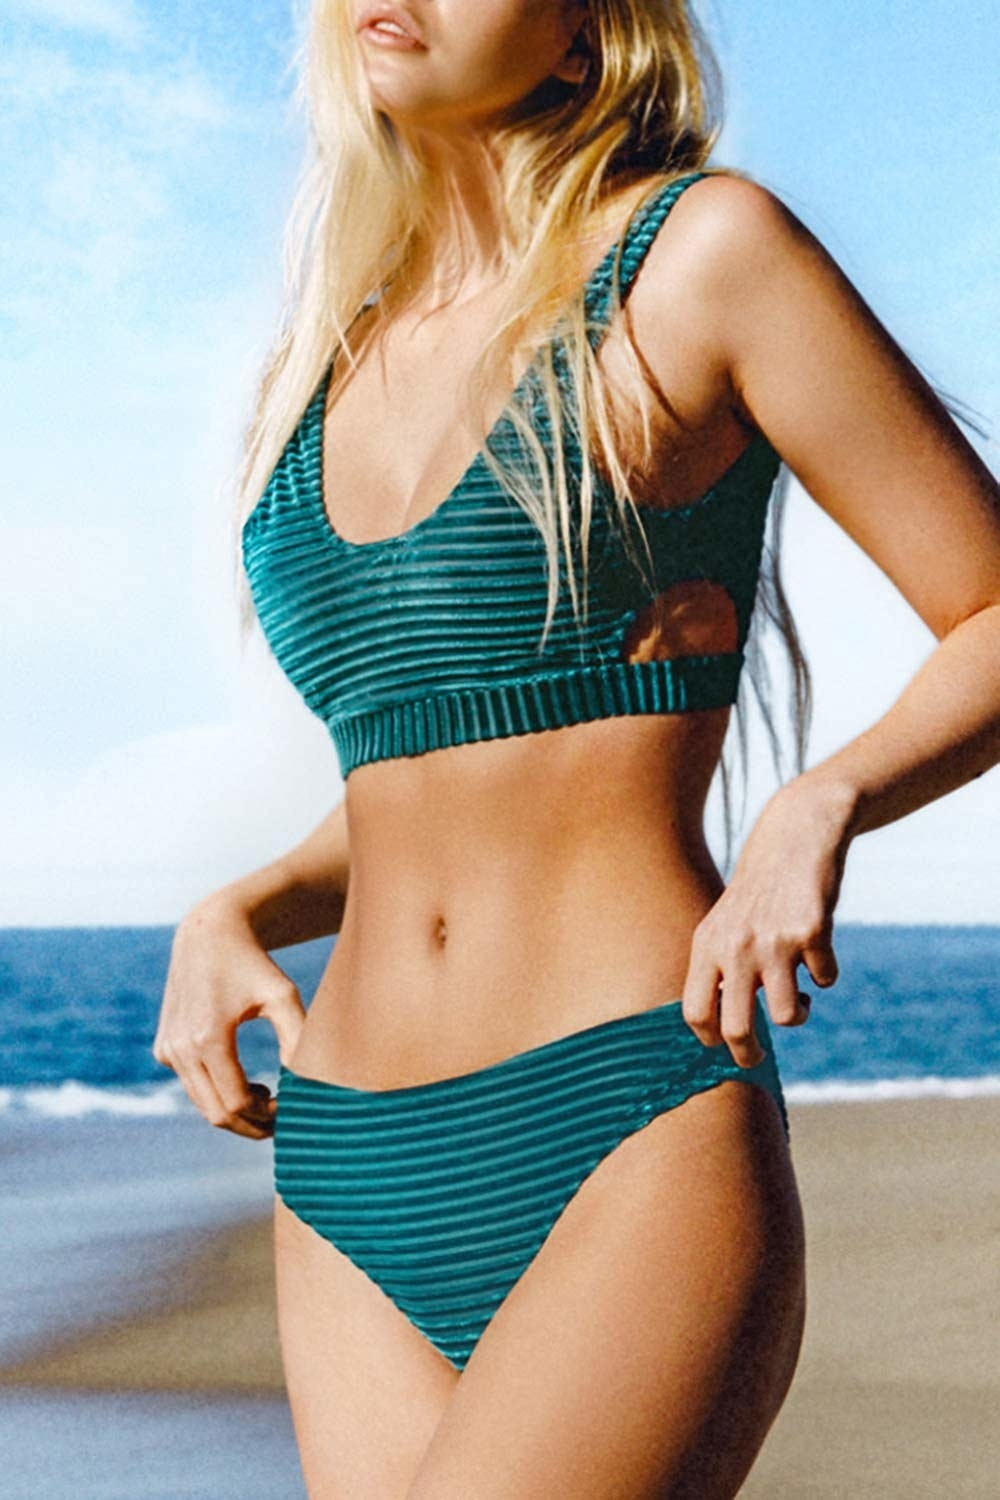 swimsuit with ribbed fabric